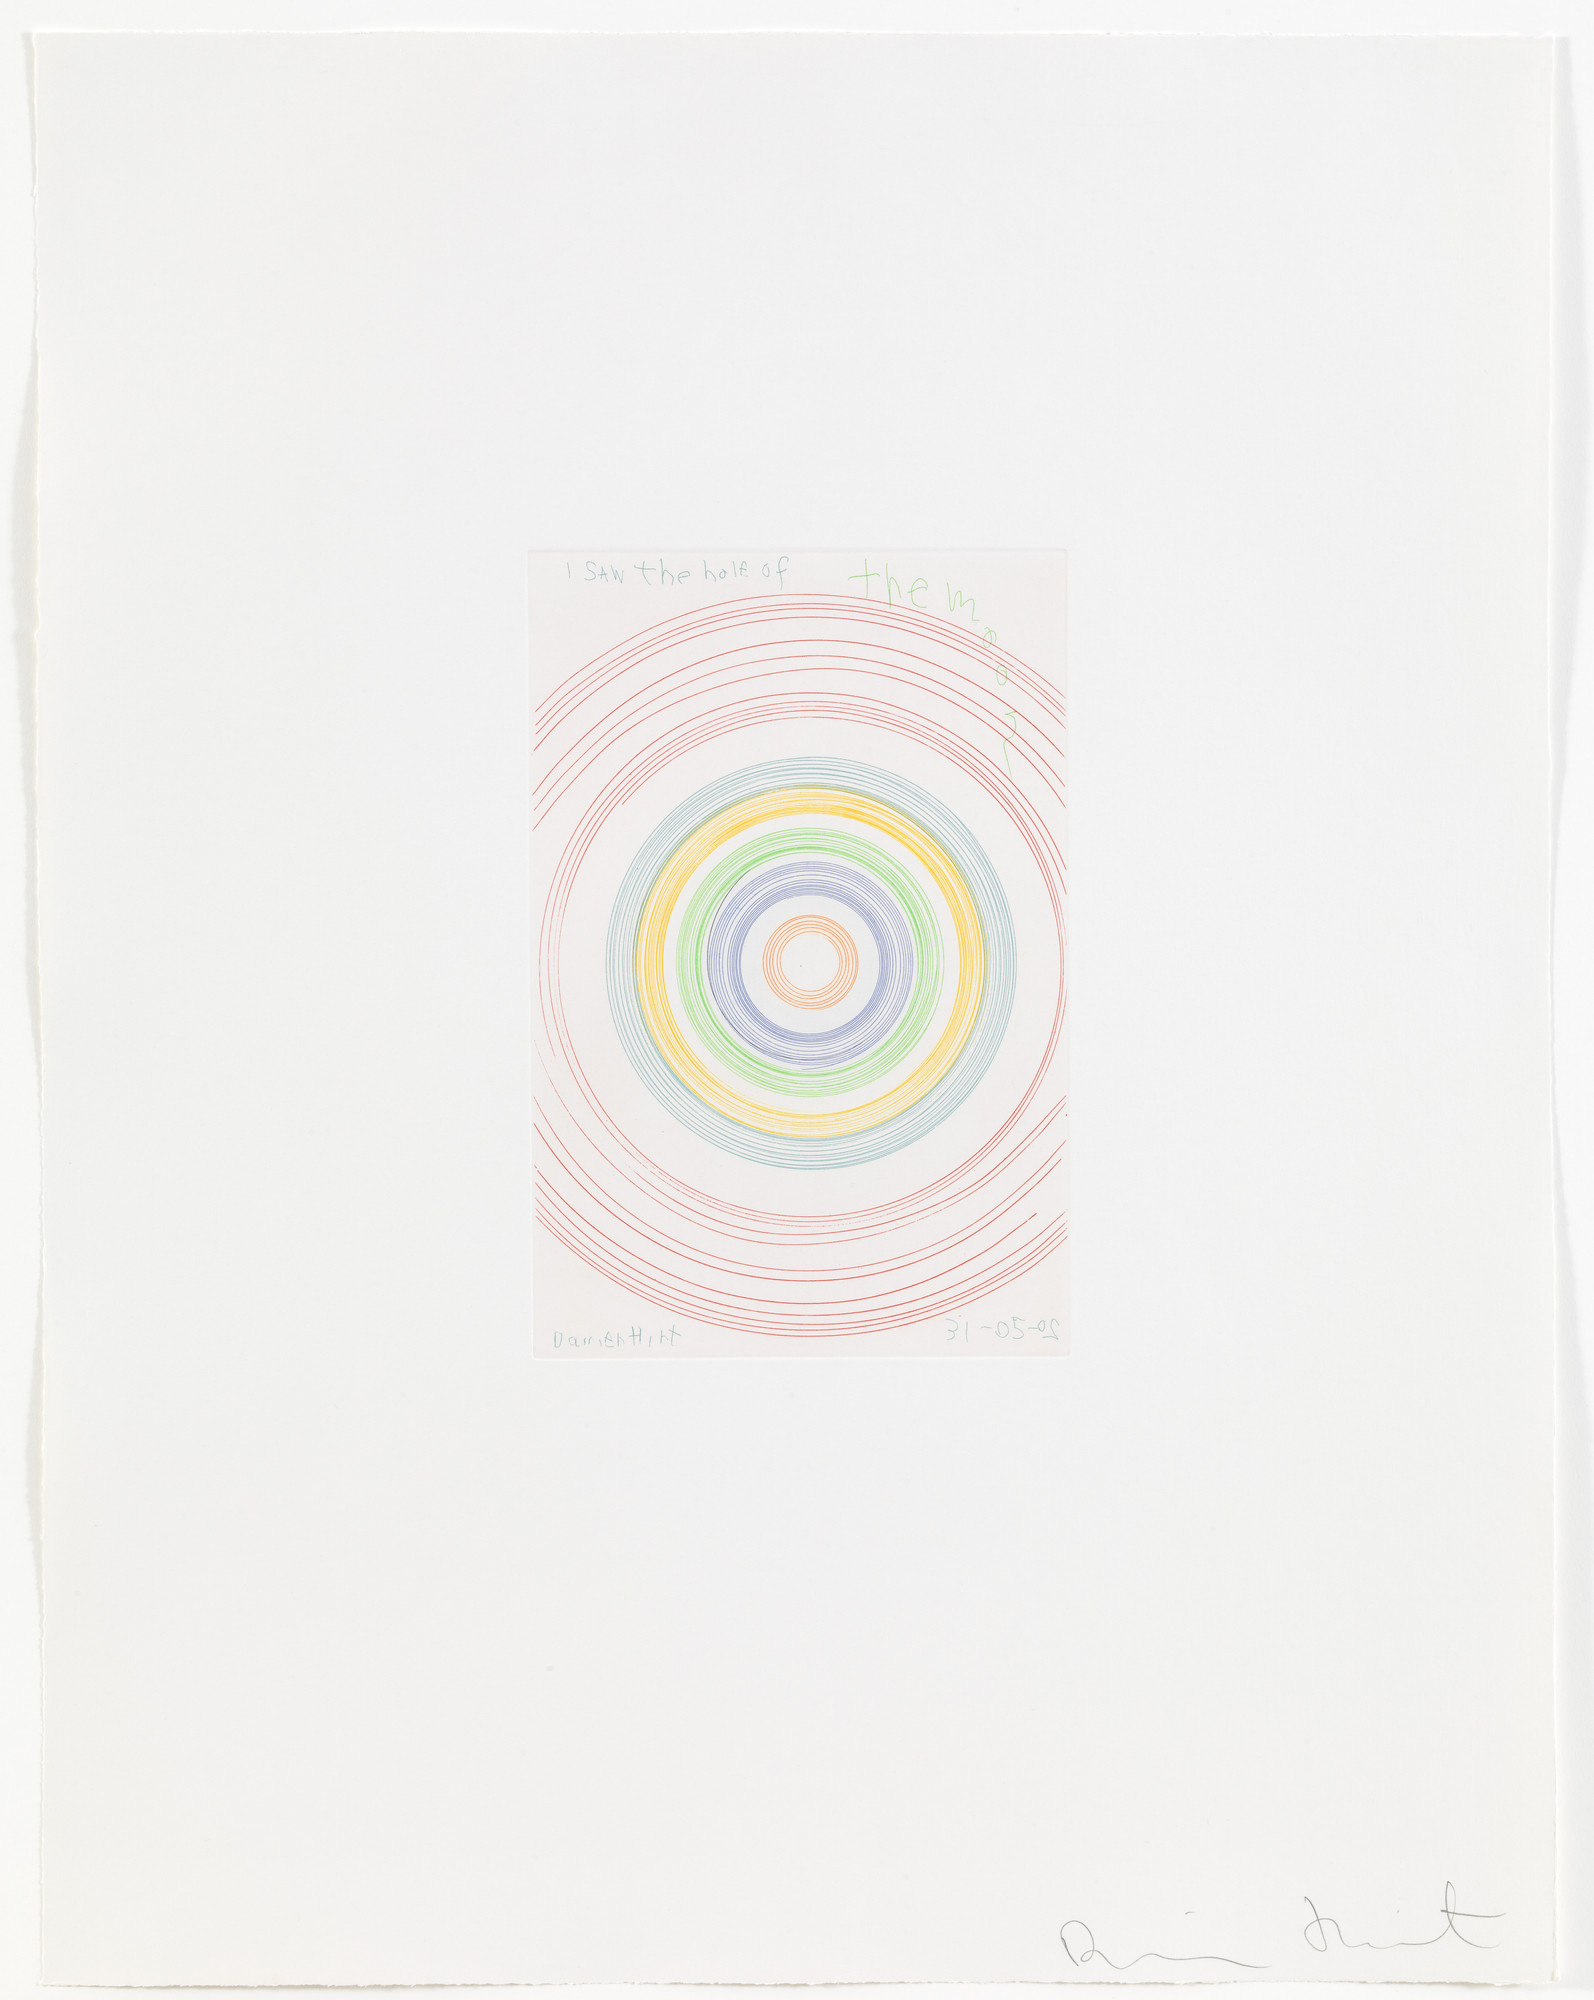 Damien Hirst. I saw the half of the moon from In a Spin, the Action of the World on Things, Volume 1. 2002